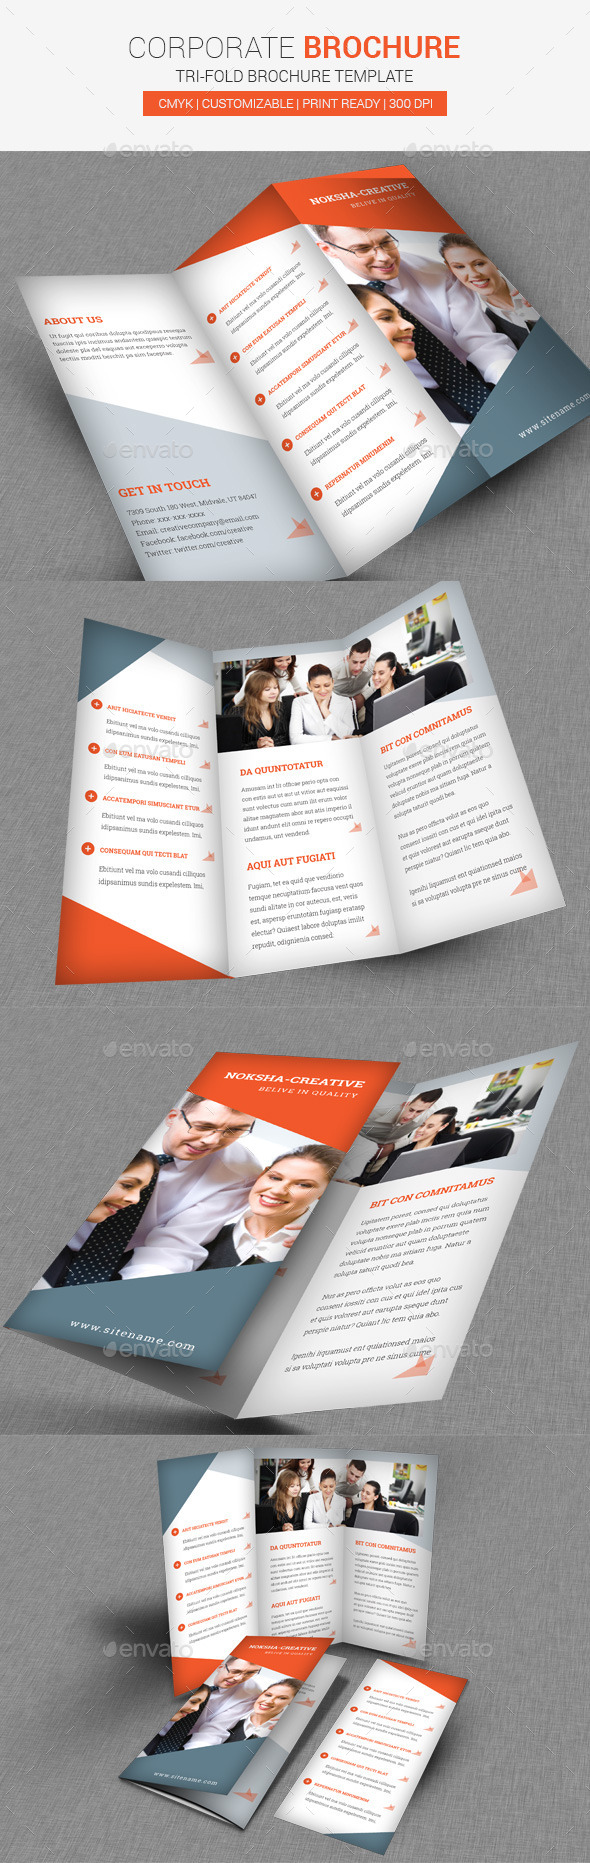 GraphicRiver TriFold Brochure Corporate 9911249